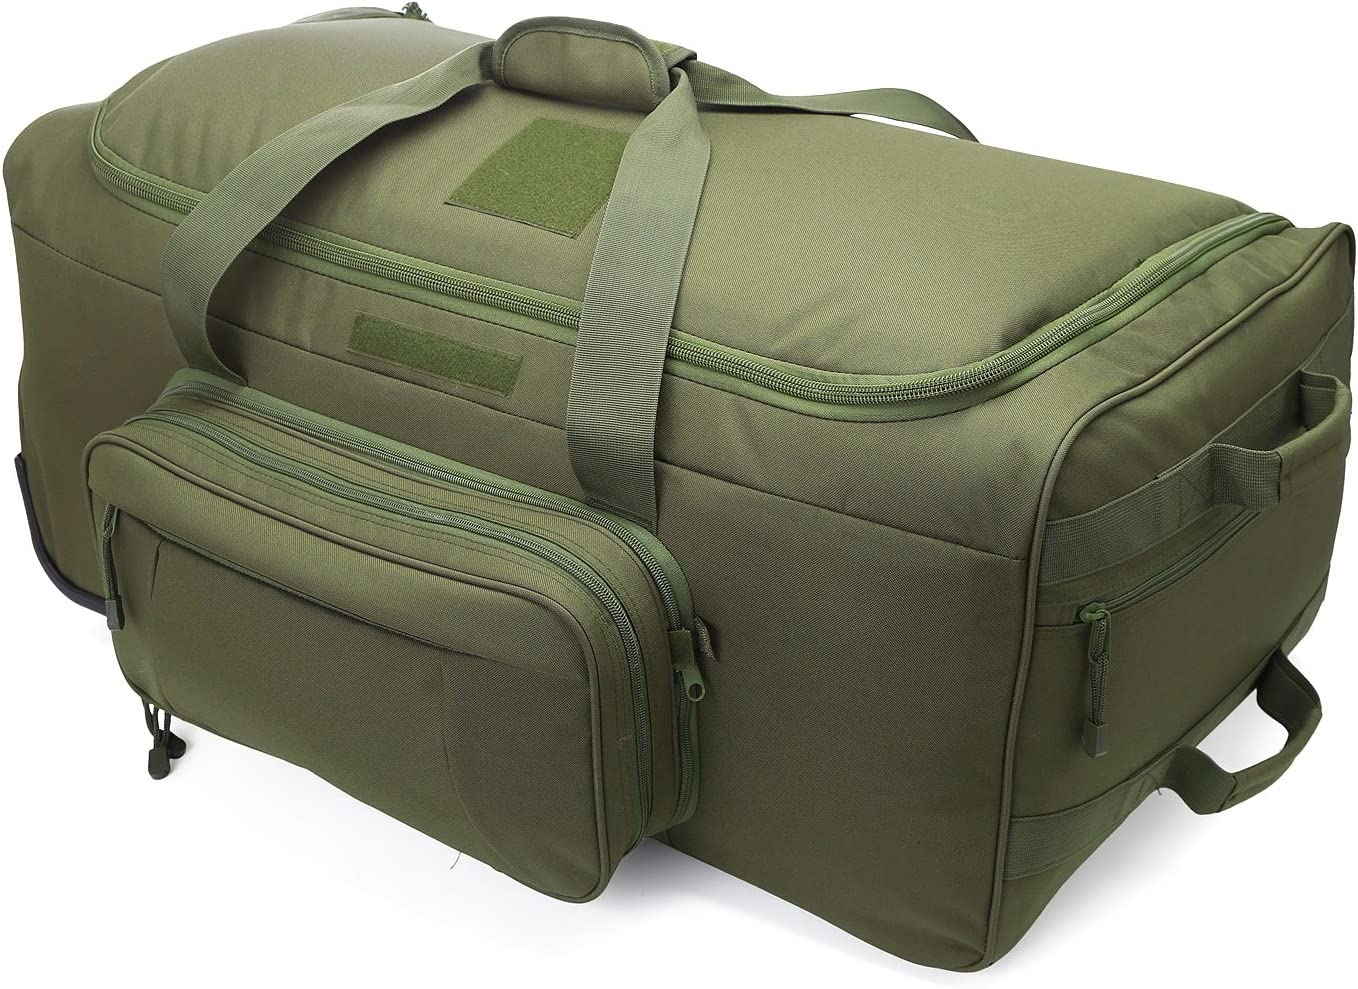 WolfWarriorX Duffel Bag Wheels Rolling Deployment Bag Wheeled Military Suitcase